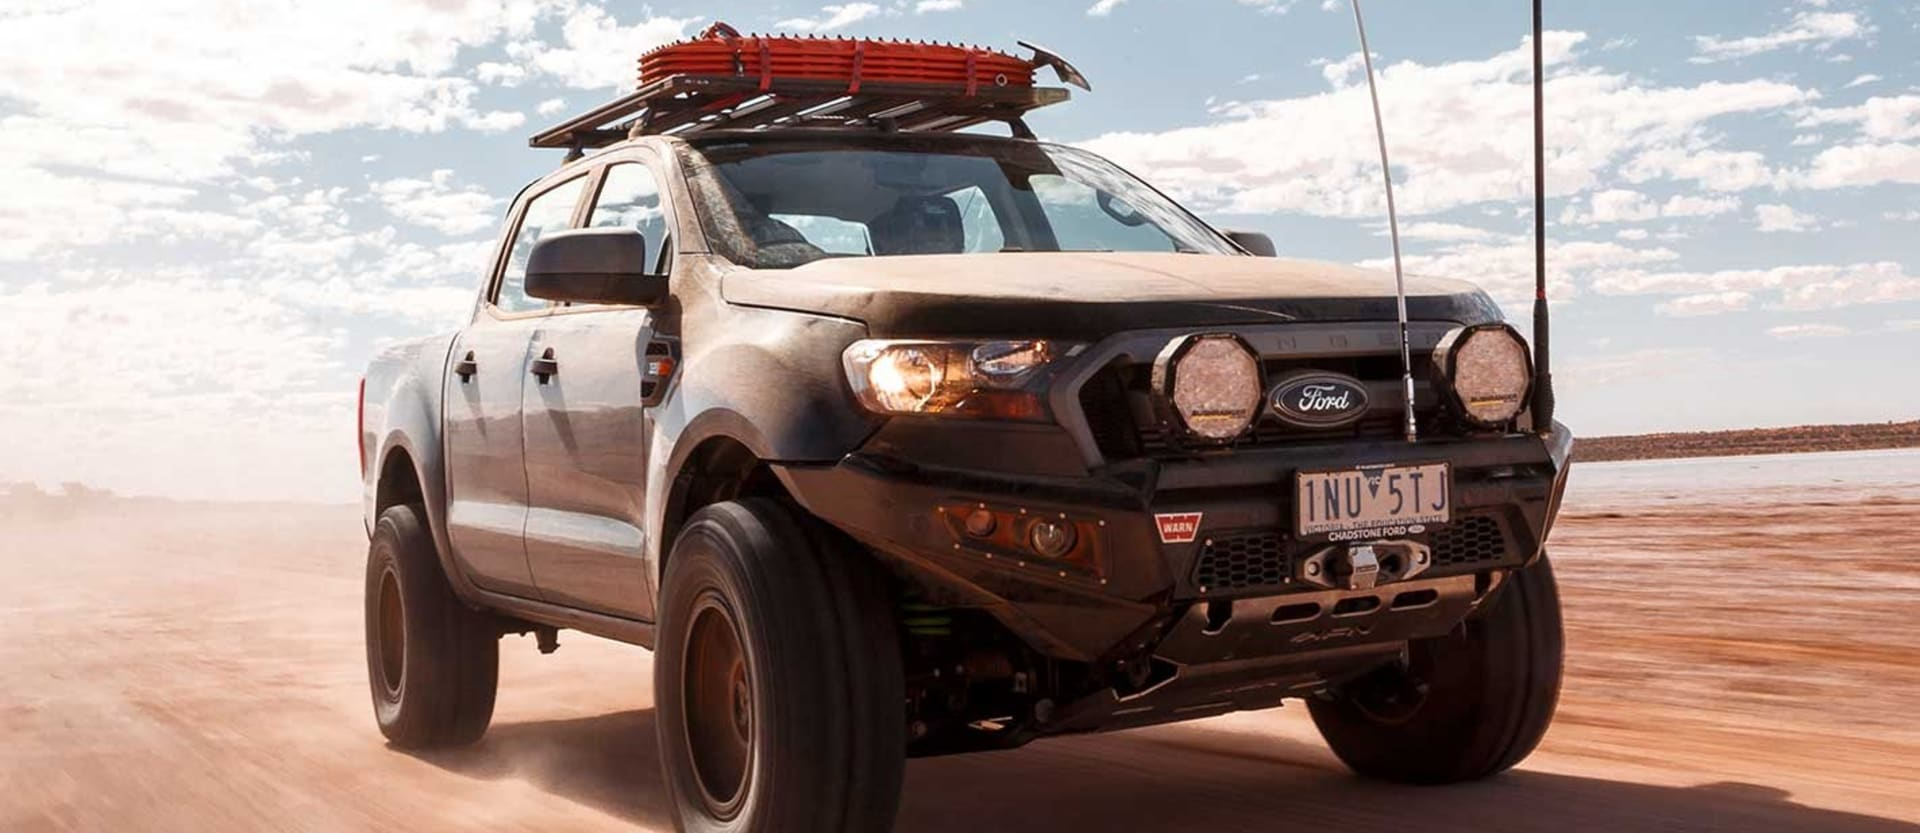 New car market introducing recognised 4x4 accessories